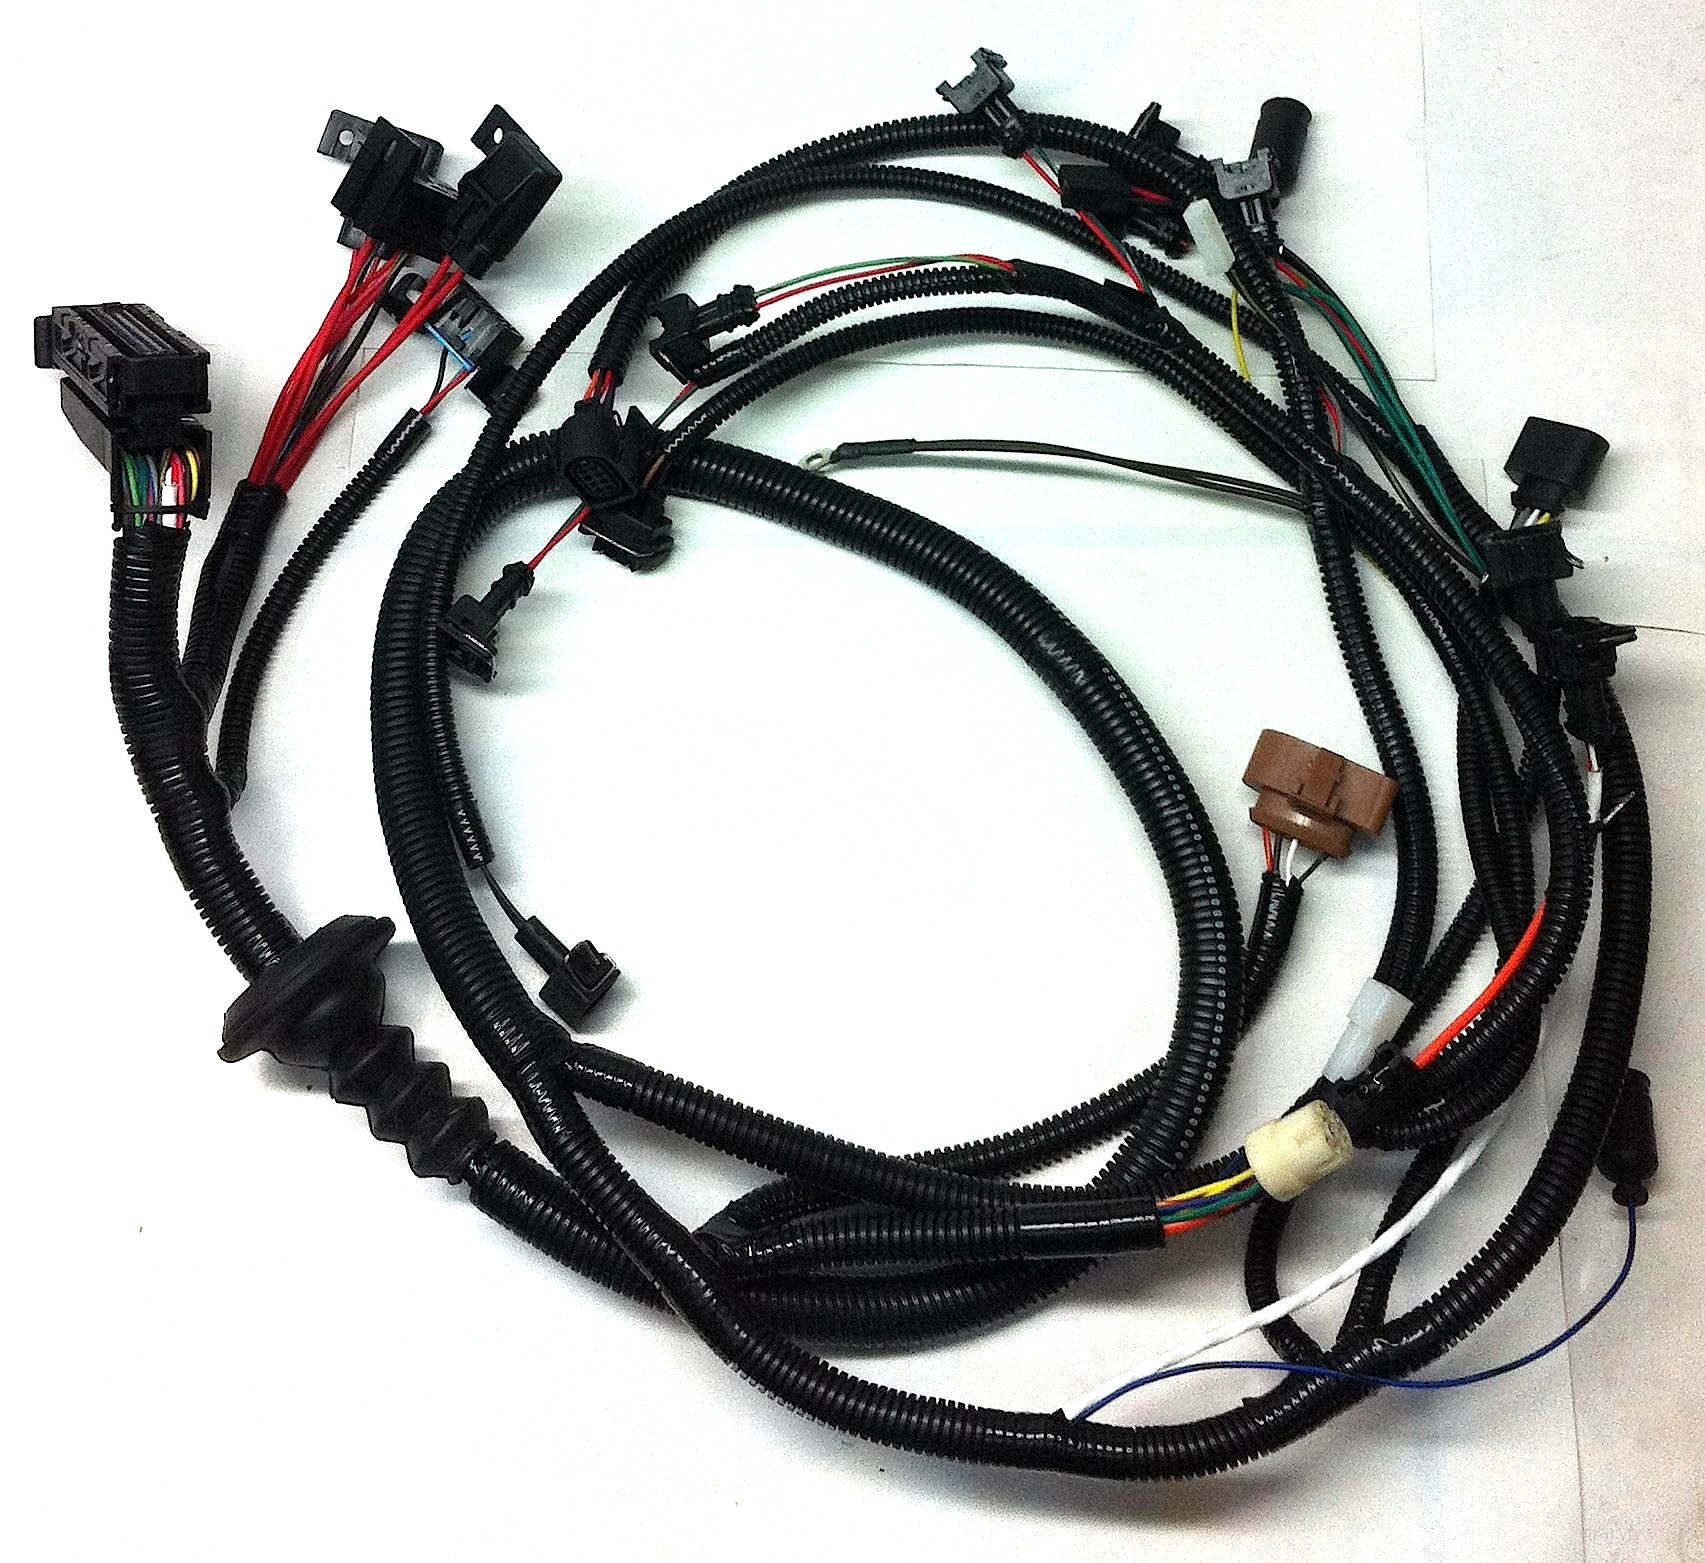 2lr tiico conversion wiring harness foreign auto supply inc rh foreignautosupply com Spark Plug Wire Looms Auto Wire Loom